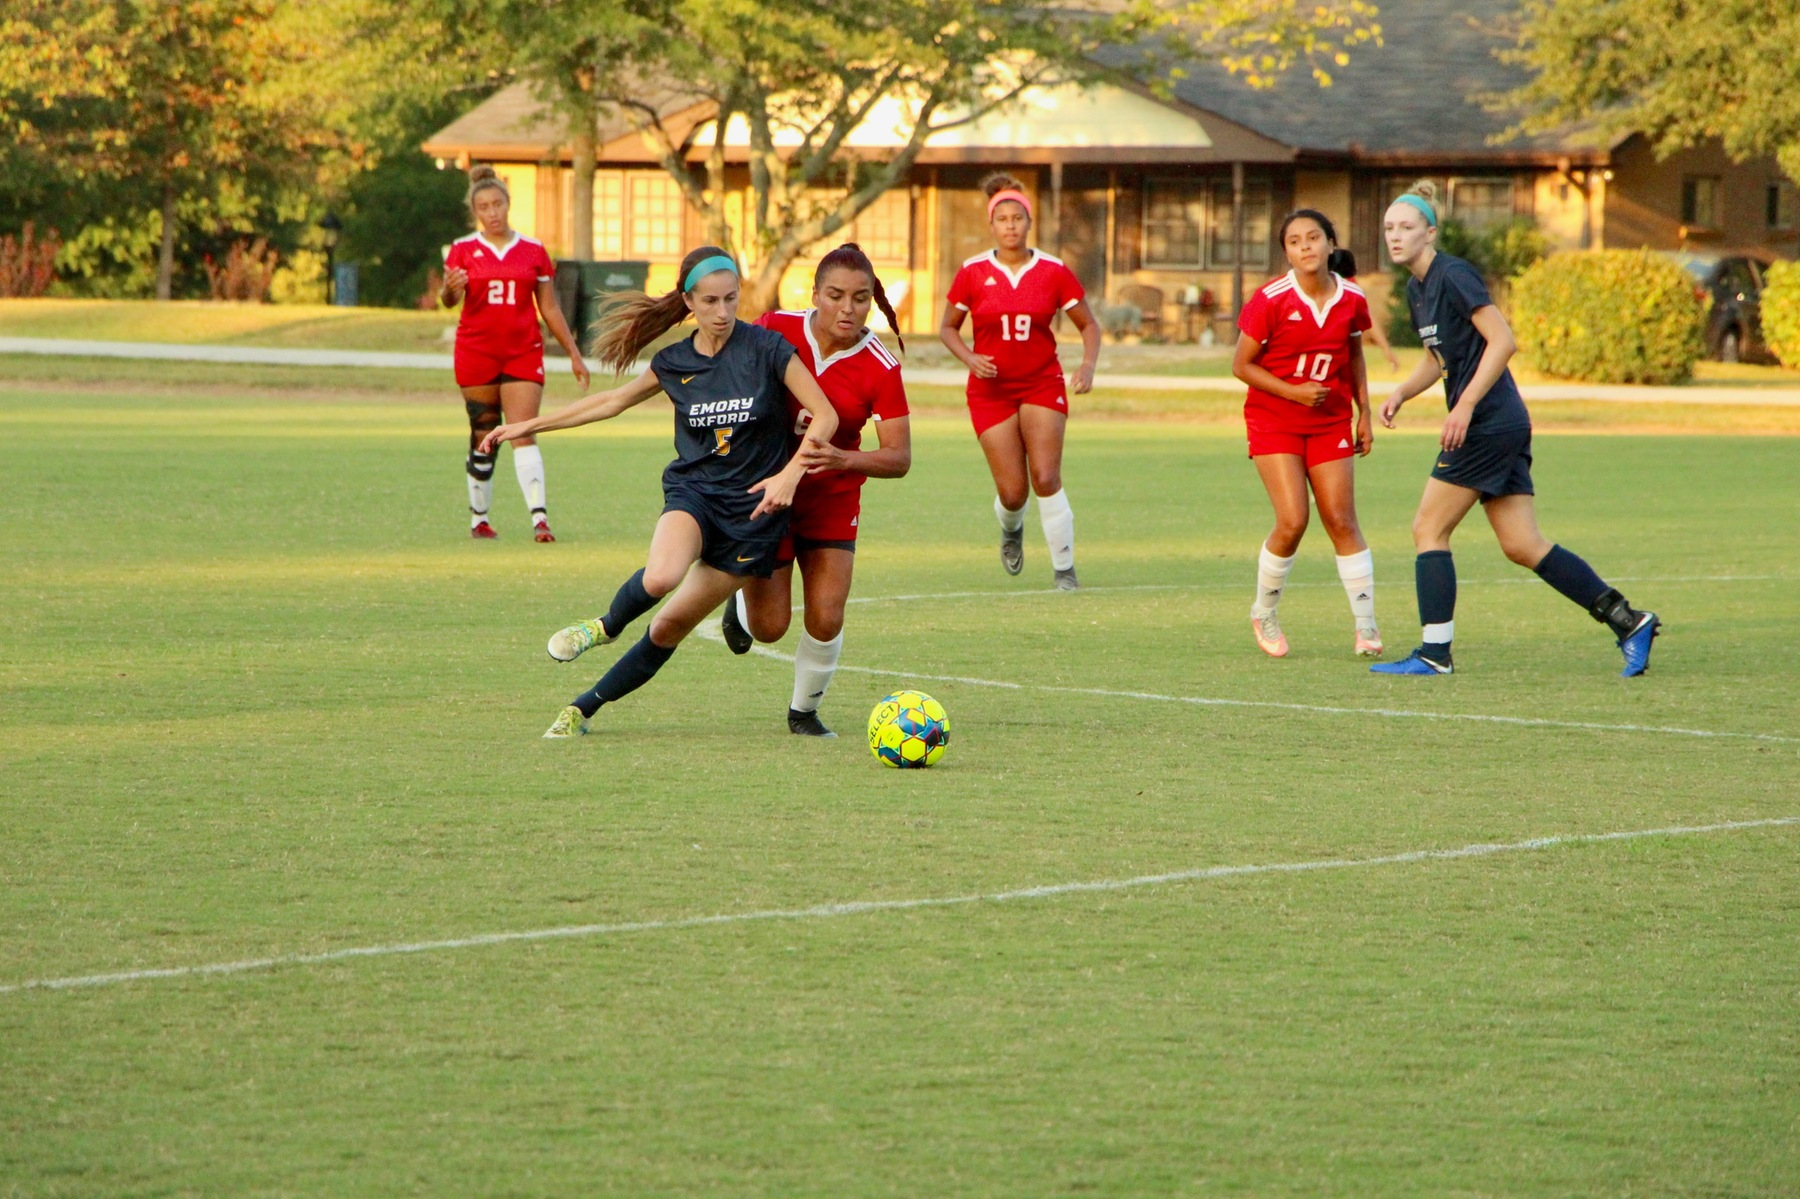 Moore's Hat Trick Leads Women's Soccer to Dominating Win